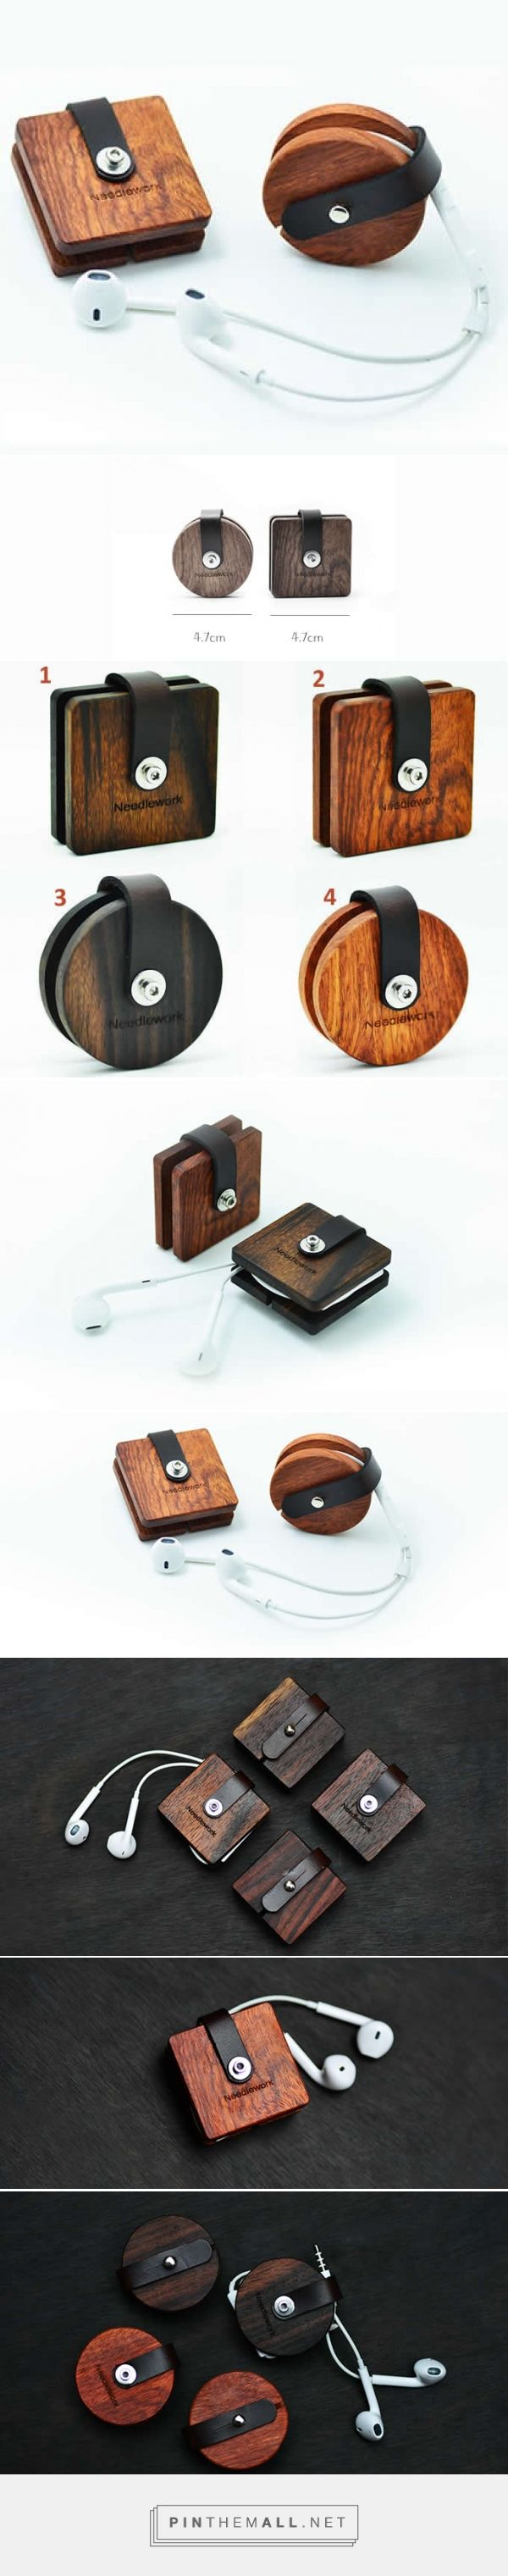 Wooden Headphone Wrap Winder Cable Cord Organizer - FeelGift - created via https://pinthemall.net